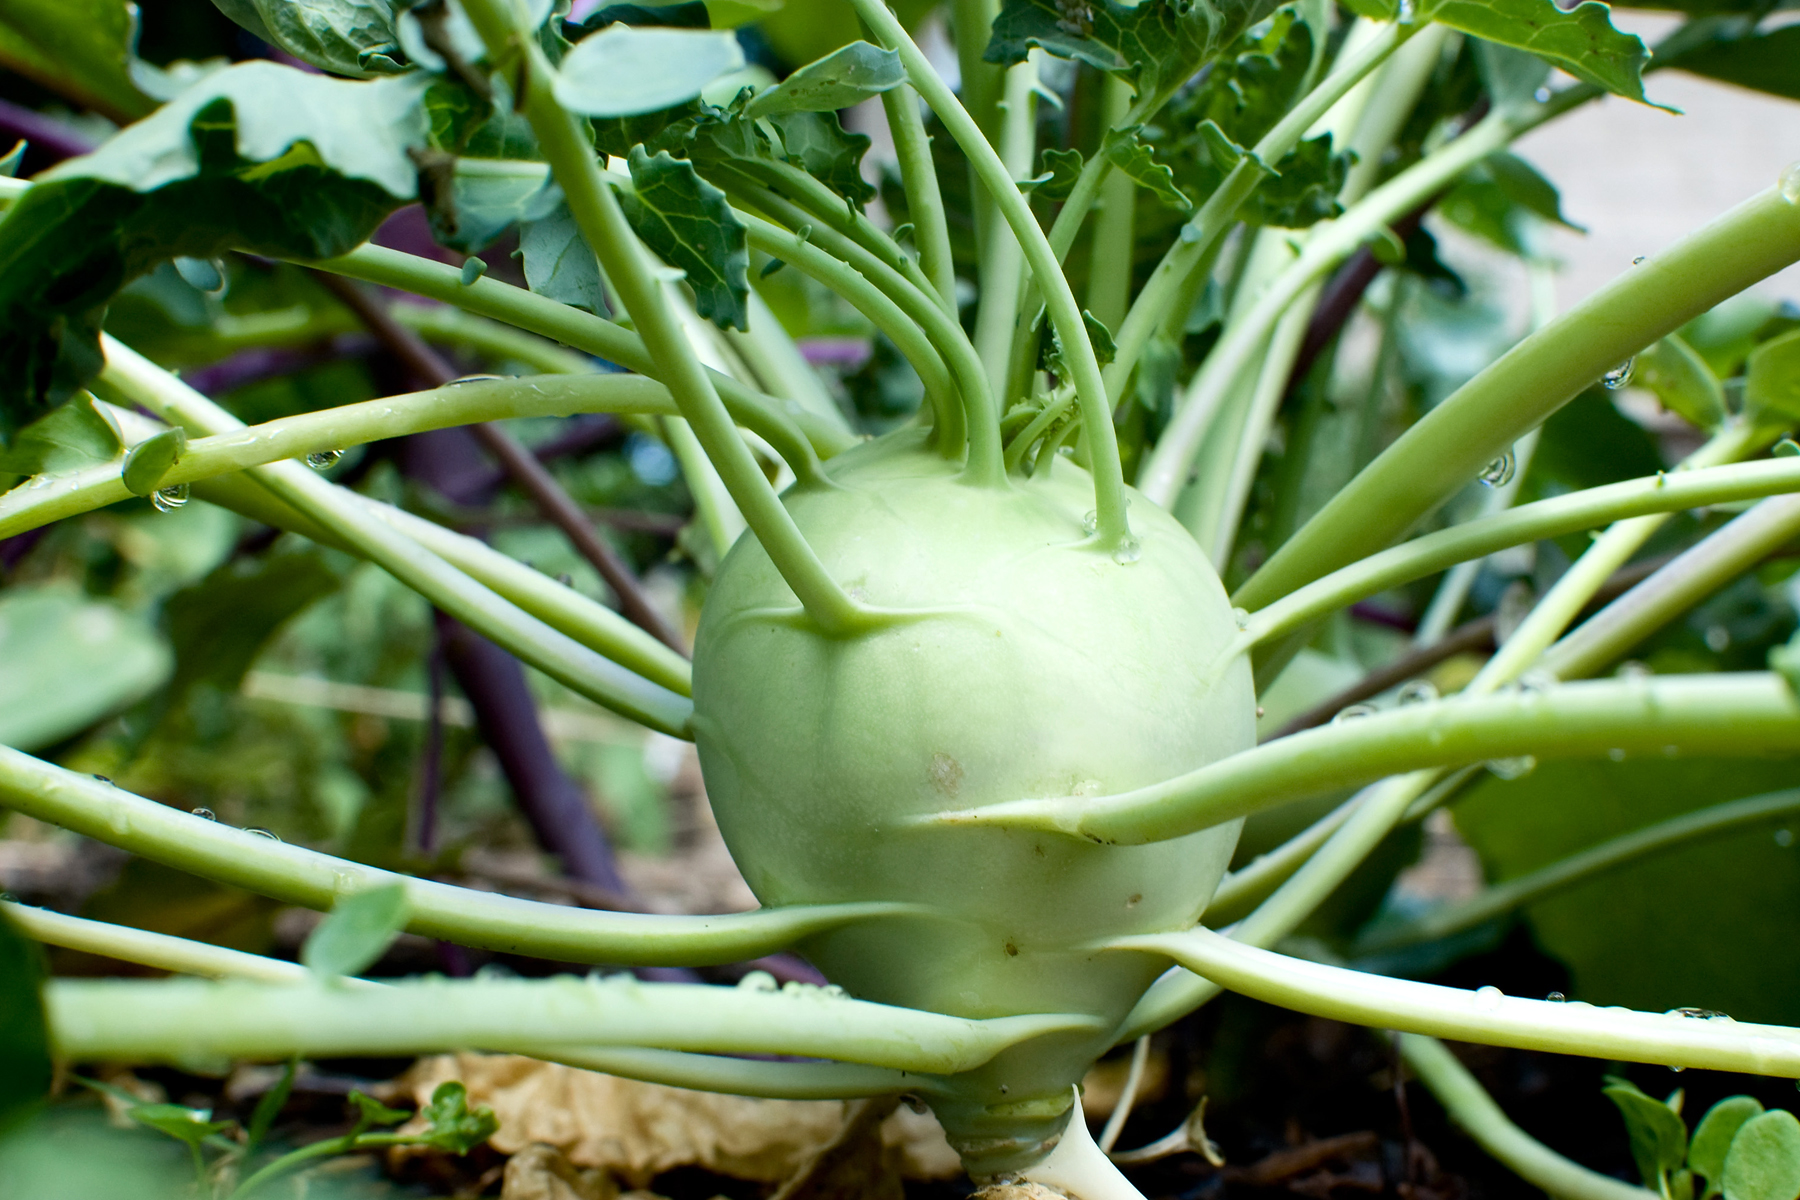 Kohlrabi is an odd-looking but tasty vegetable. (Photo courtesy of Clint Gardner, https://www.flickr.com/photos/signifying/4847268280)